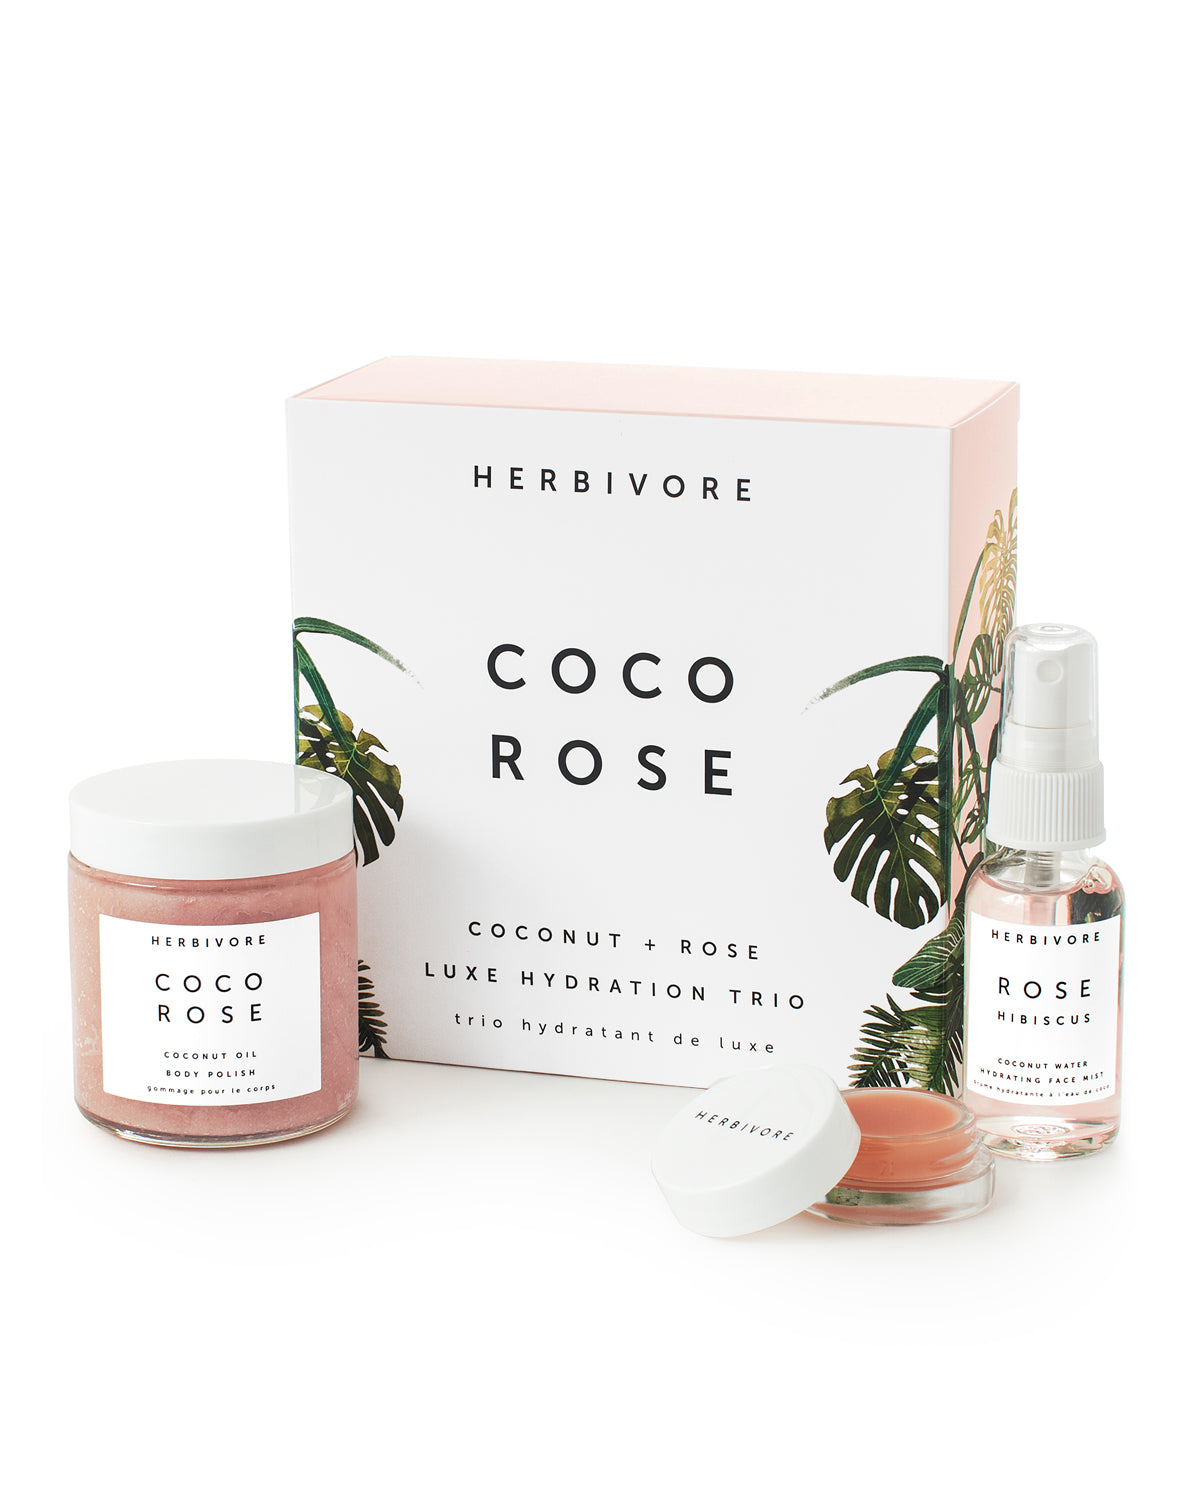 Herbivore Botanicals Coco Rose Luxe Hydration Trio Body Polish Sugar Scrub Mini Rose Hibiscus Hydrating Face Mist Lip Conditioner Coconut Oil Balm